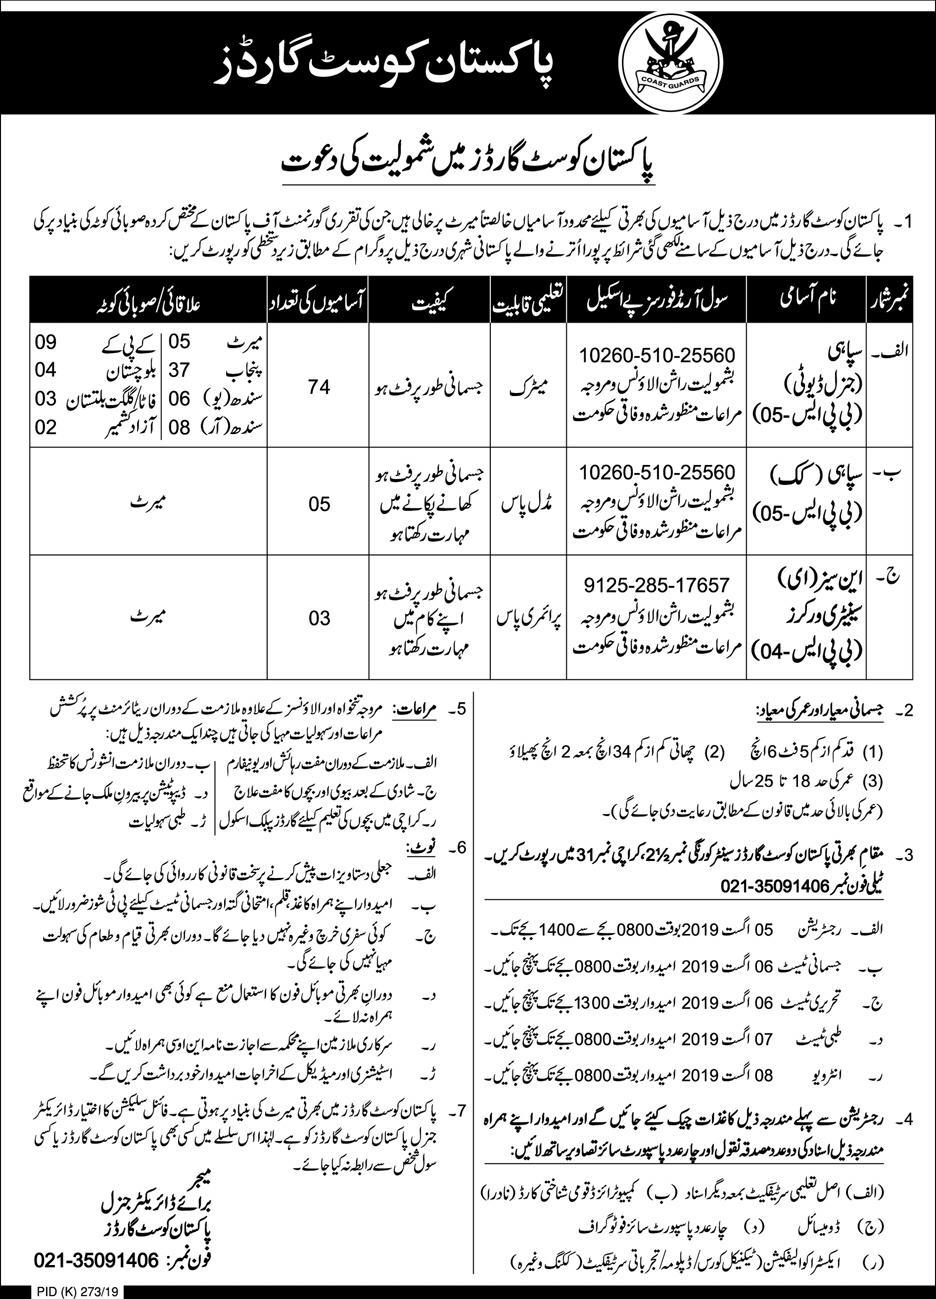 Pakistan Coast Guards Jobs, Pakistan Coast Guards Soldier Jobs 2019 July | Govt of Pakistan